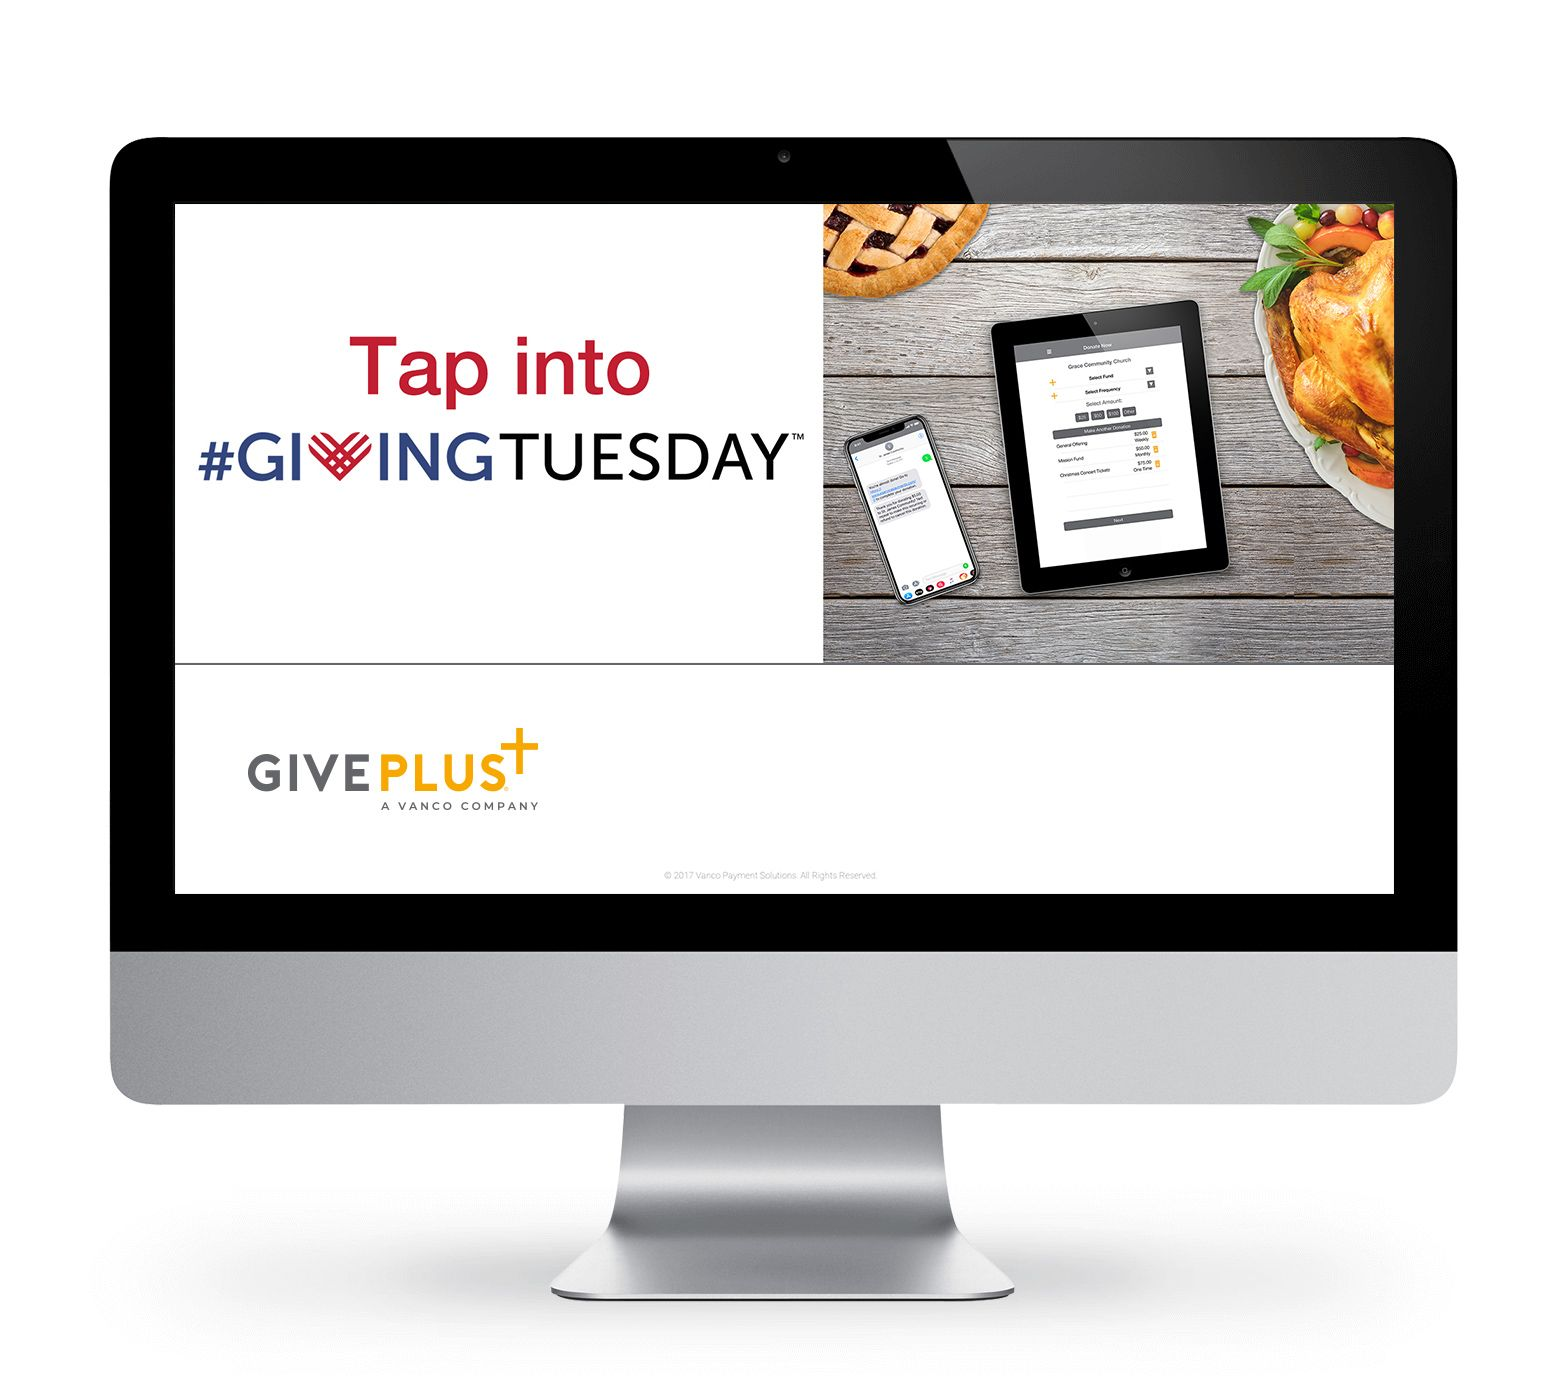 Tap into Giving Tuesday